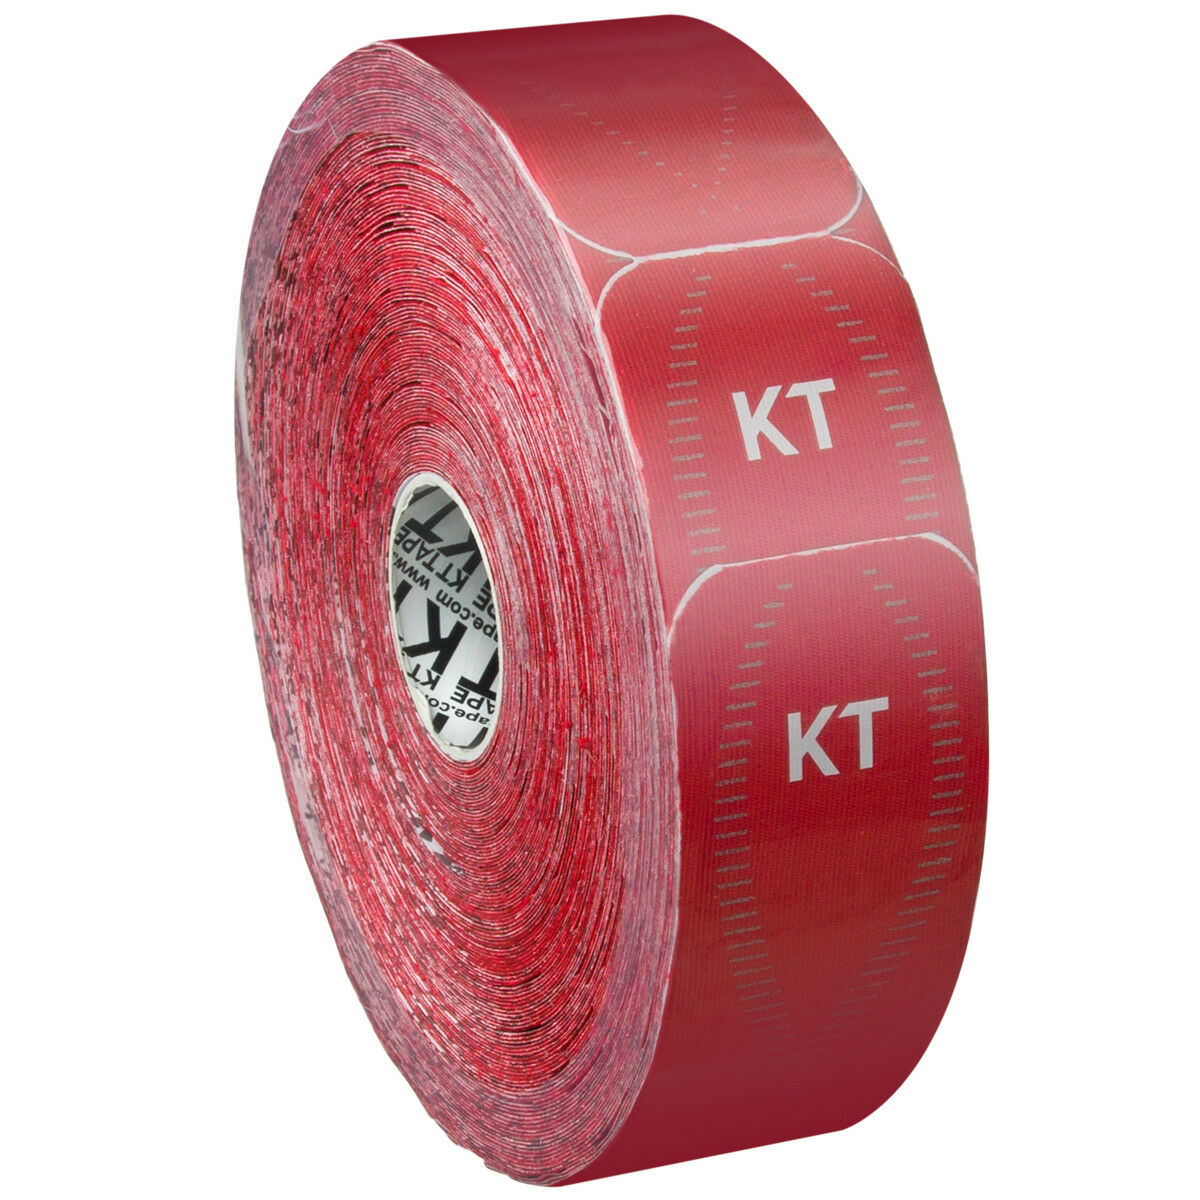 KT Tape Jumbo Synthetic Pro Precut Elastic Athletic Sport Kinesiology Rage Red